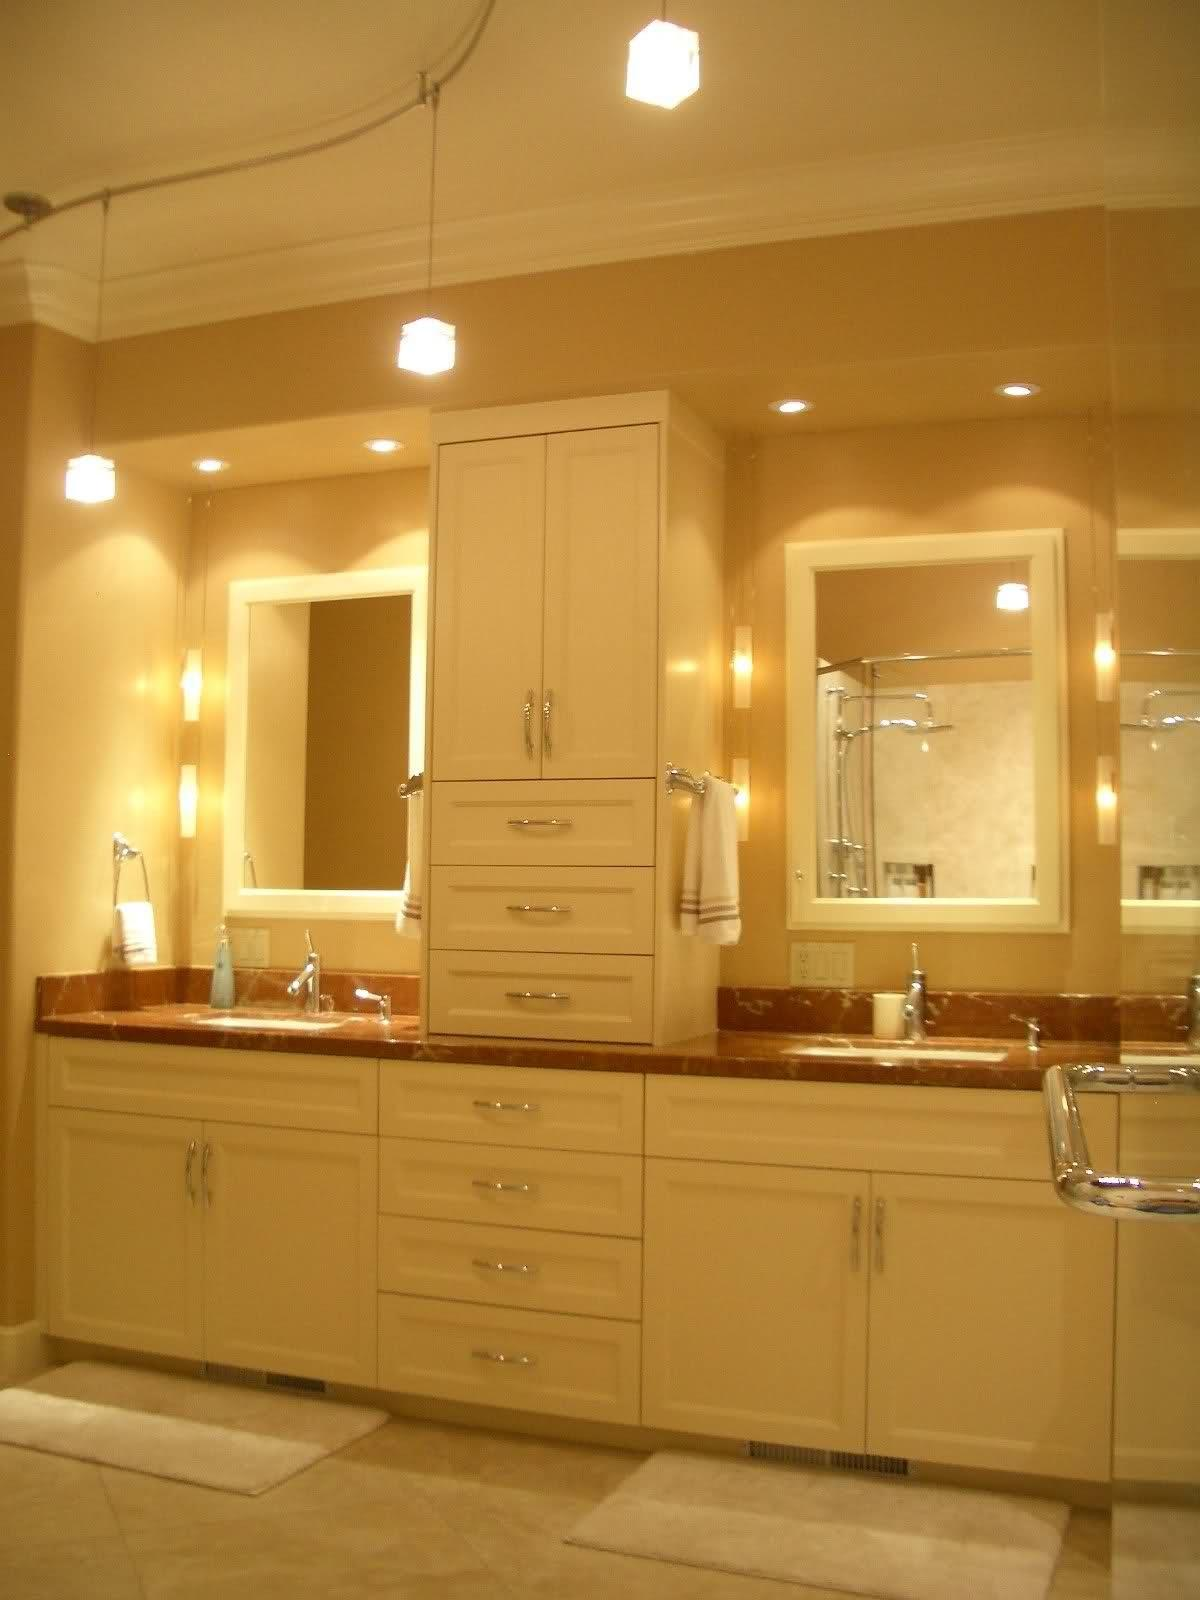 Bathroom Lighting Ideas Make Romance Bathroomhome